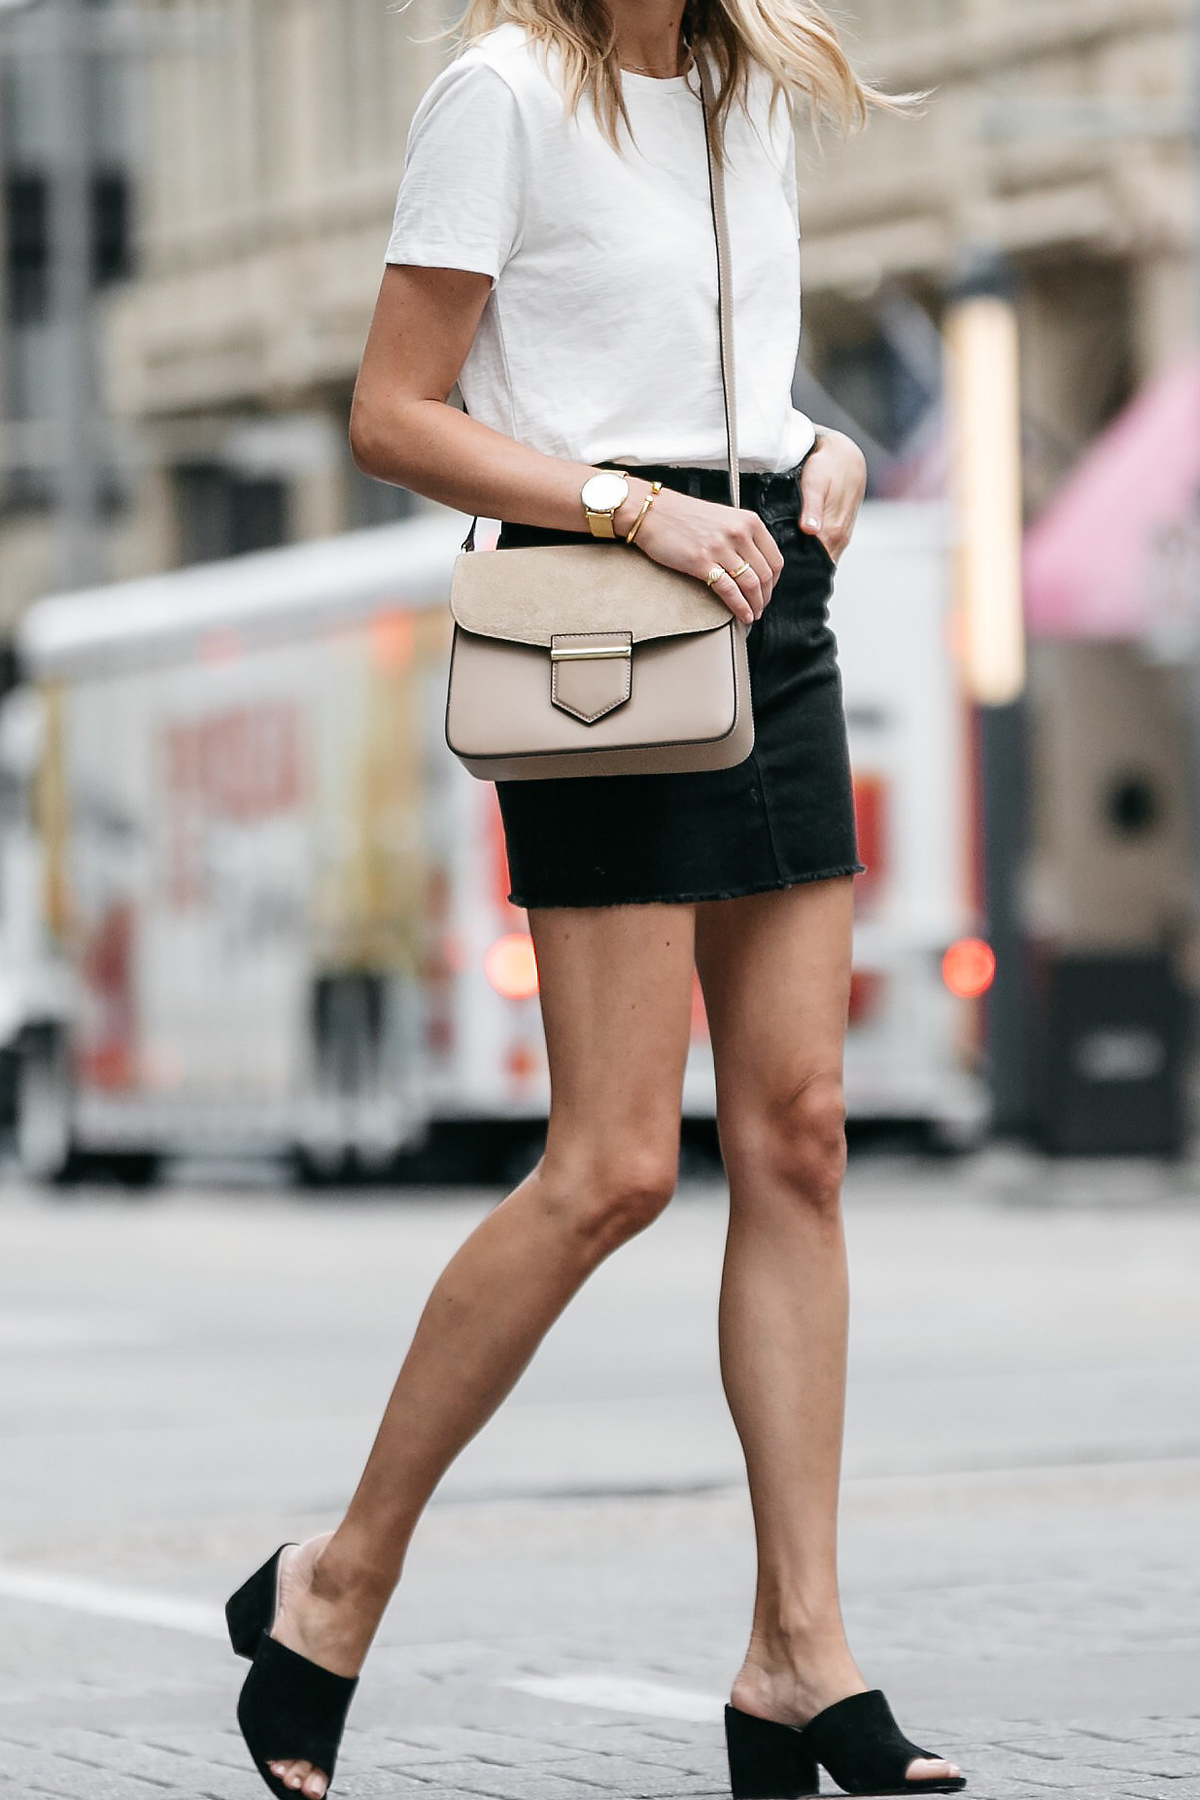 white tshirt frame black denim skirt outfit black mules tan crossbody handbag street style dallas blogger fashion blogger